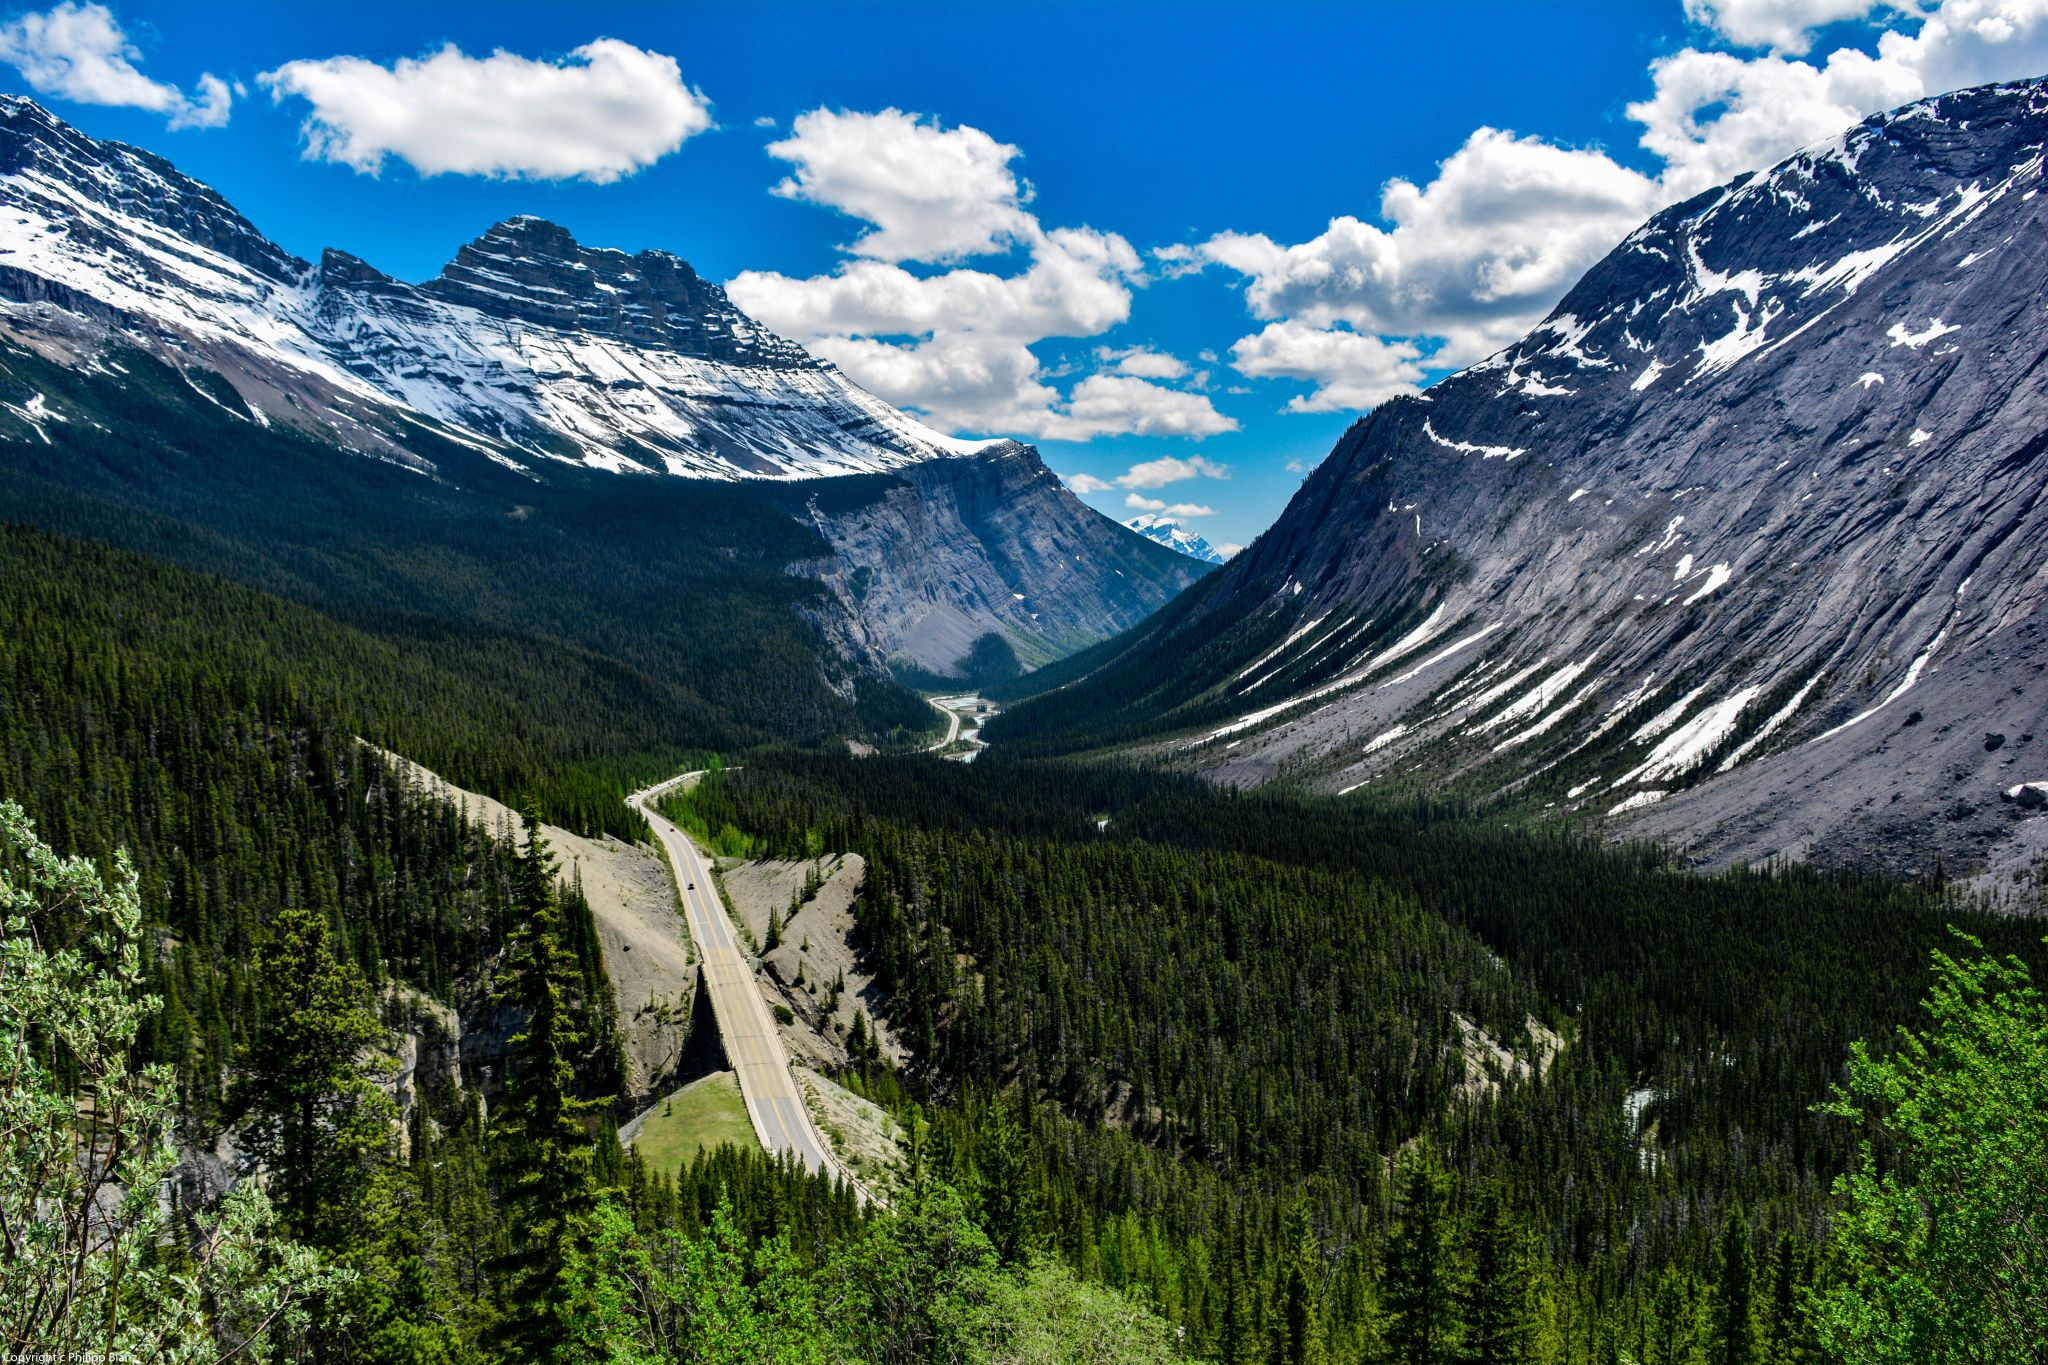 Icefield Parkway Valley, Canada